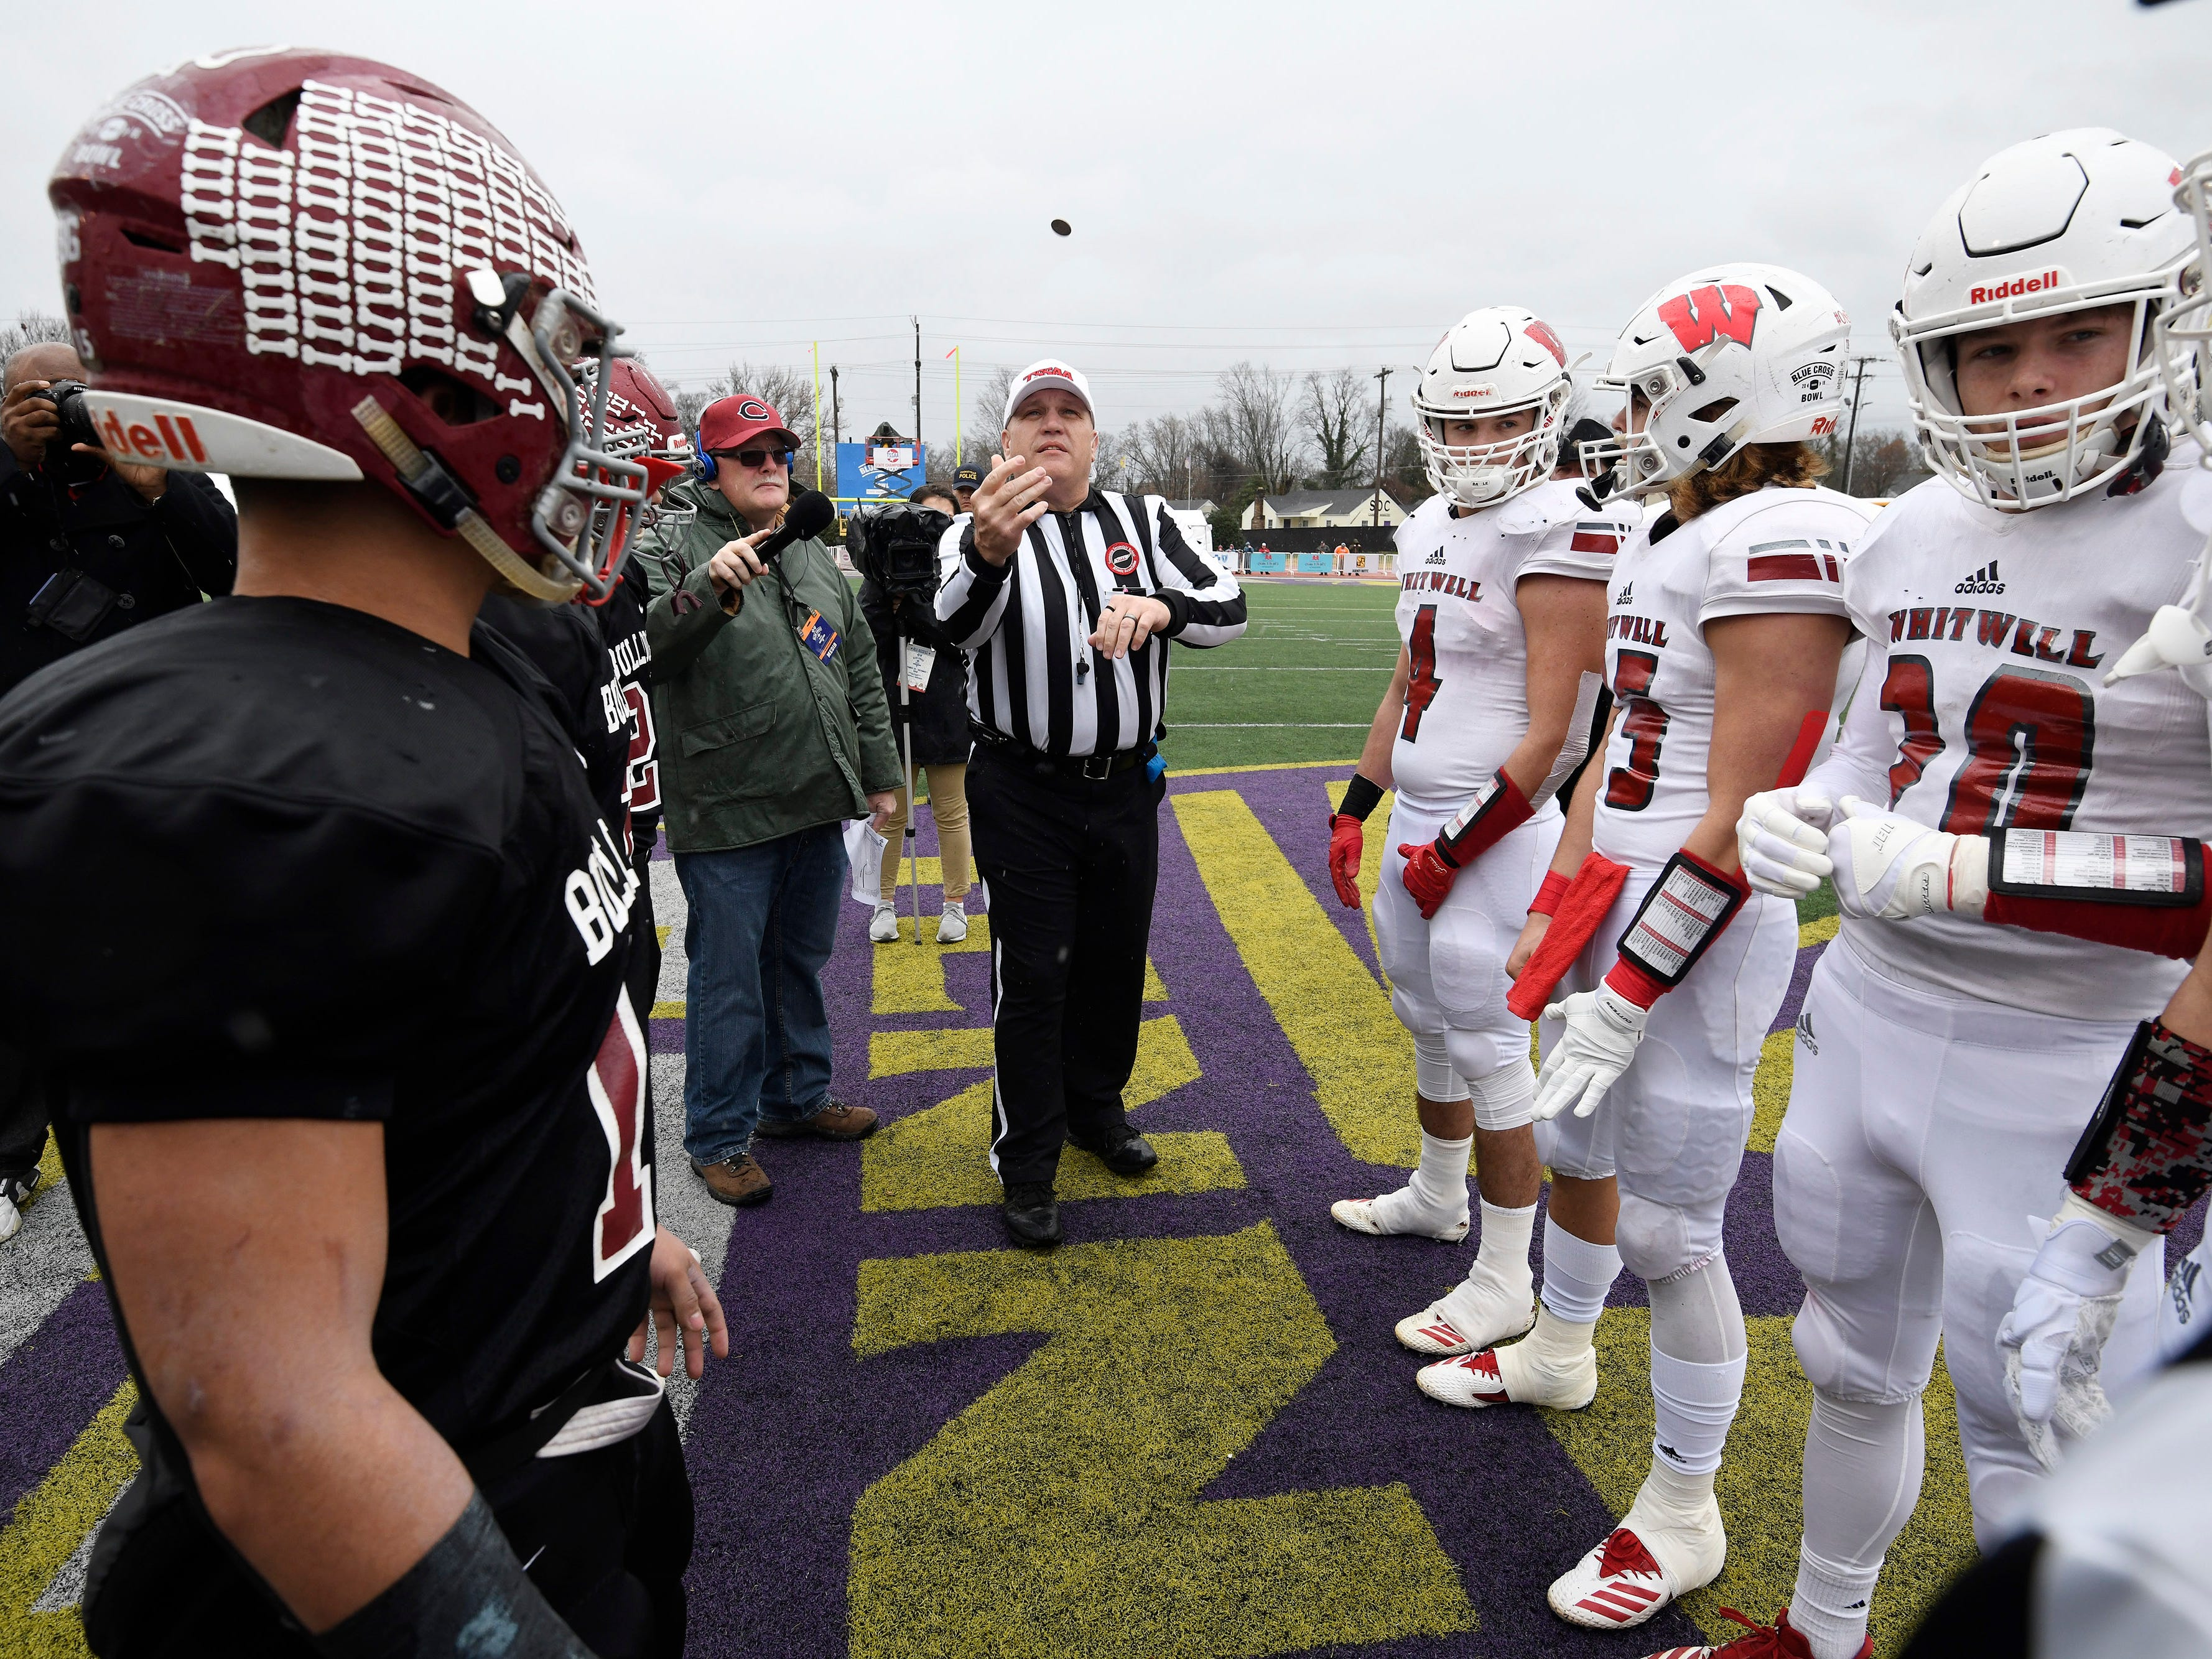 Cornersville and Whitwell players watch the coin toss at the Class I-A BlueCross Bowl state championship at Tennessee Tech's Tucker Stadium in Cookeville, Tenn., on Saturday, Dec. 1, 2018.